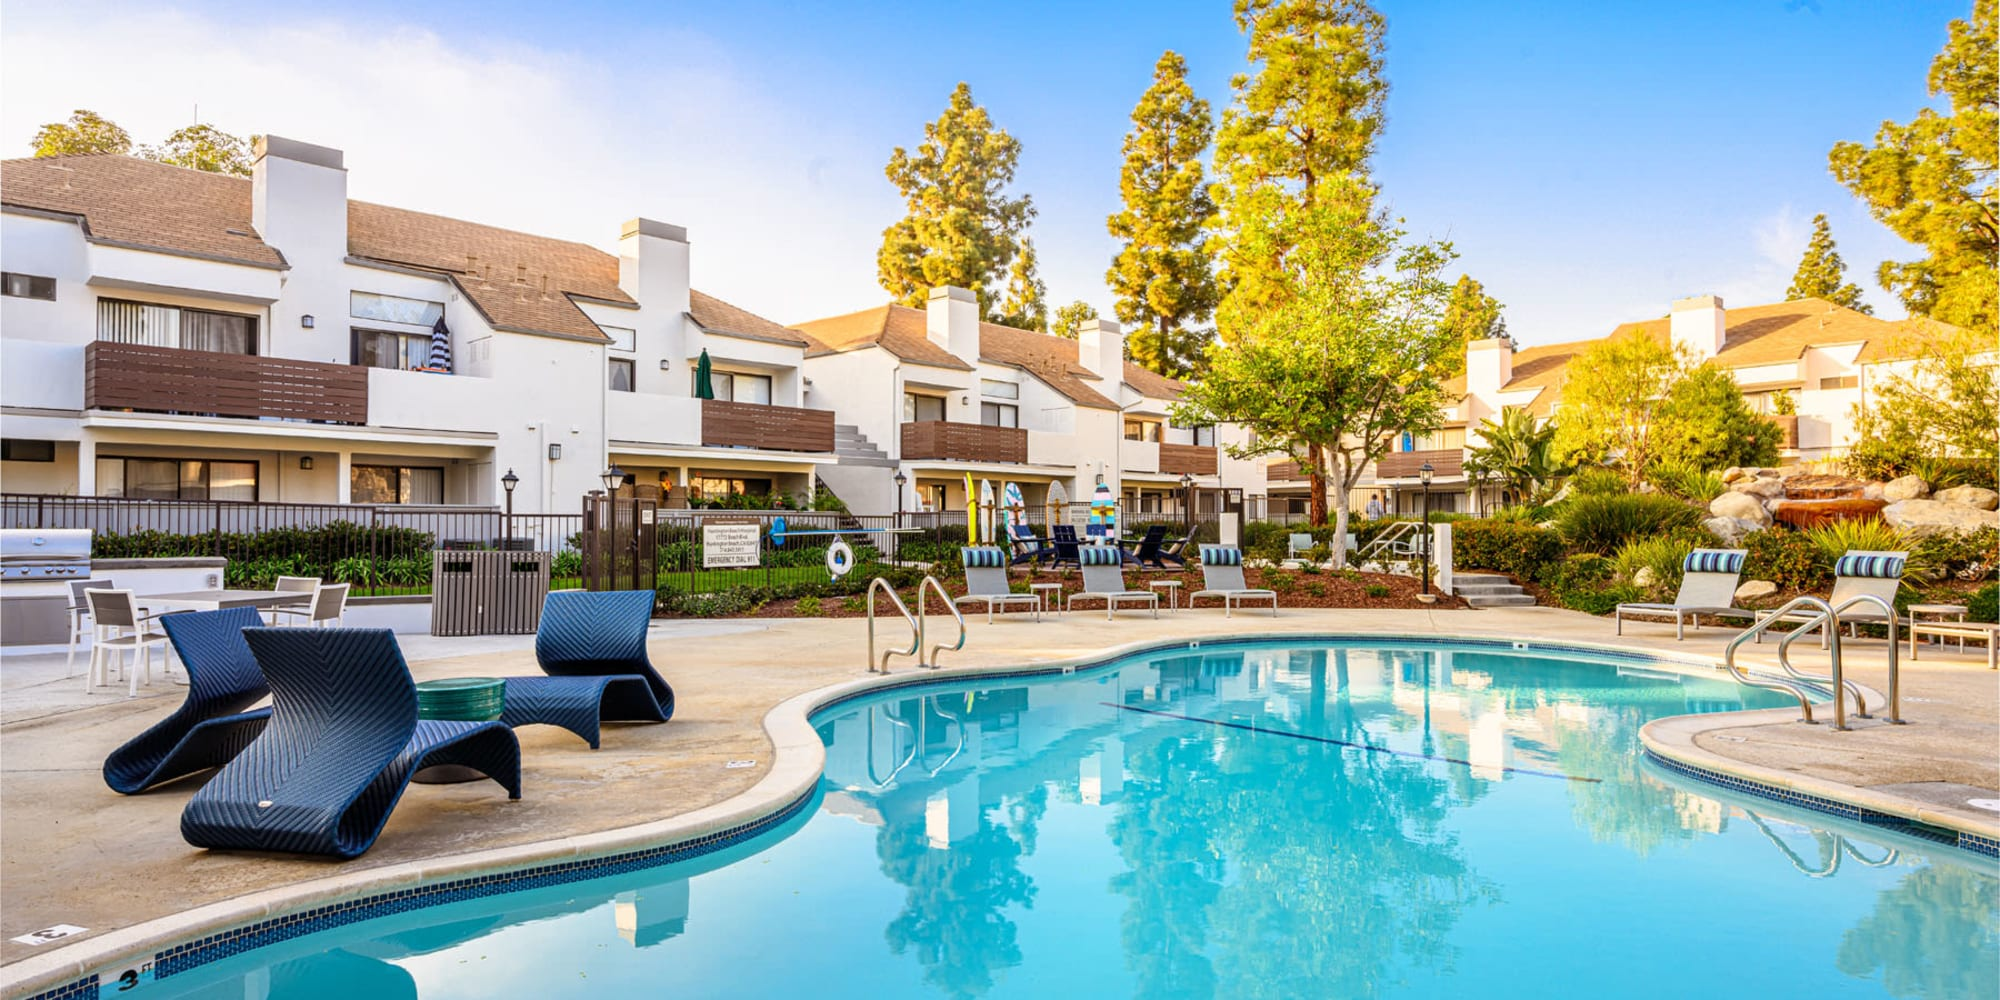 Inviting swimming pool with resident buildings and mature trees in the background at Sendero Huntington Beach in Huntington Beach, California